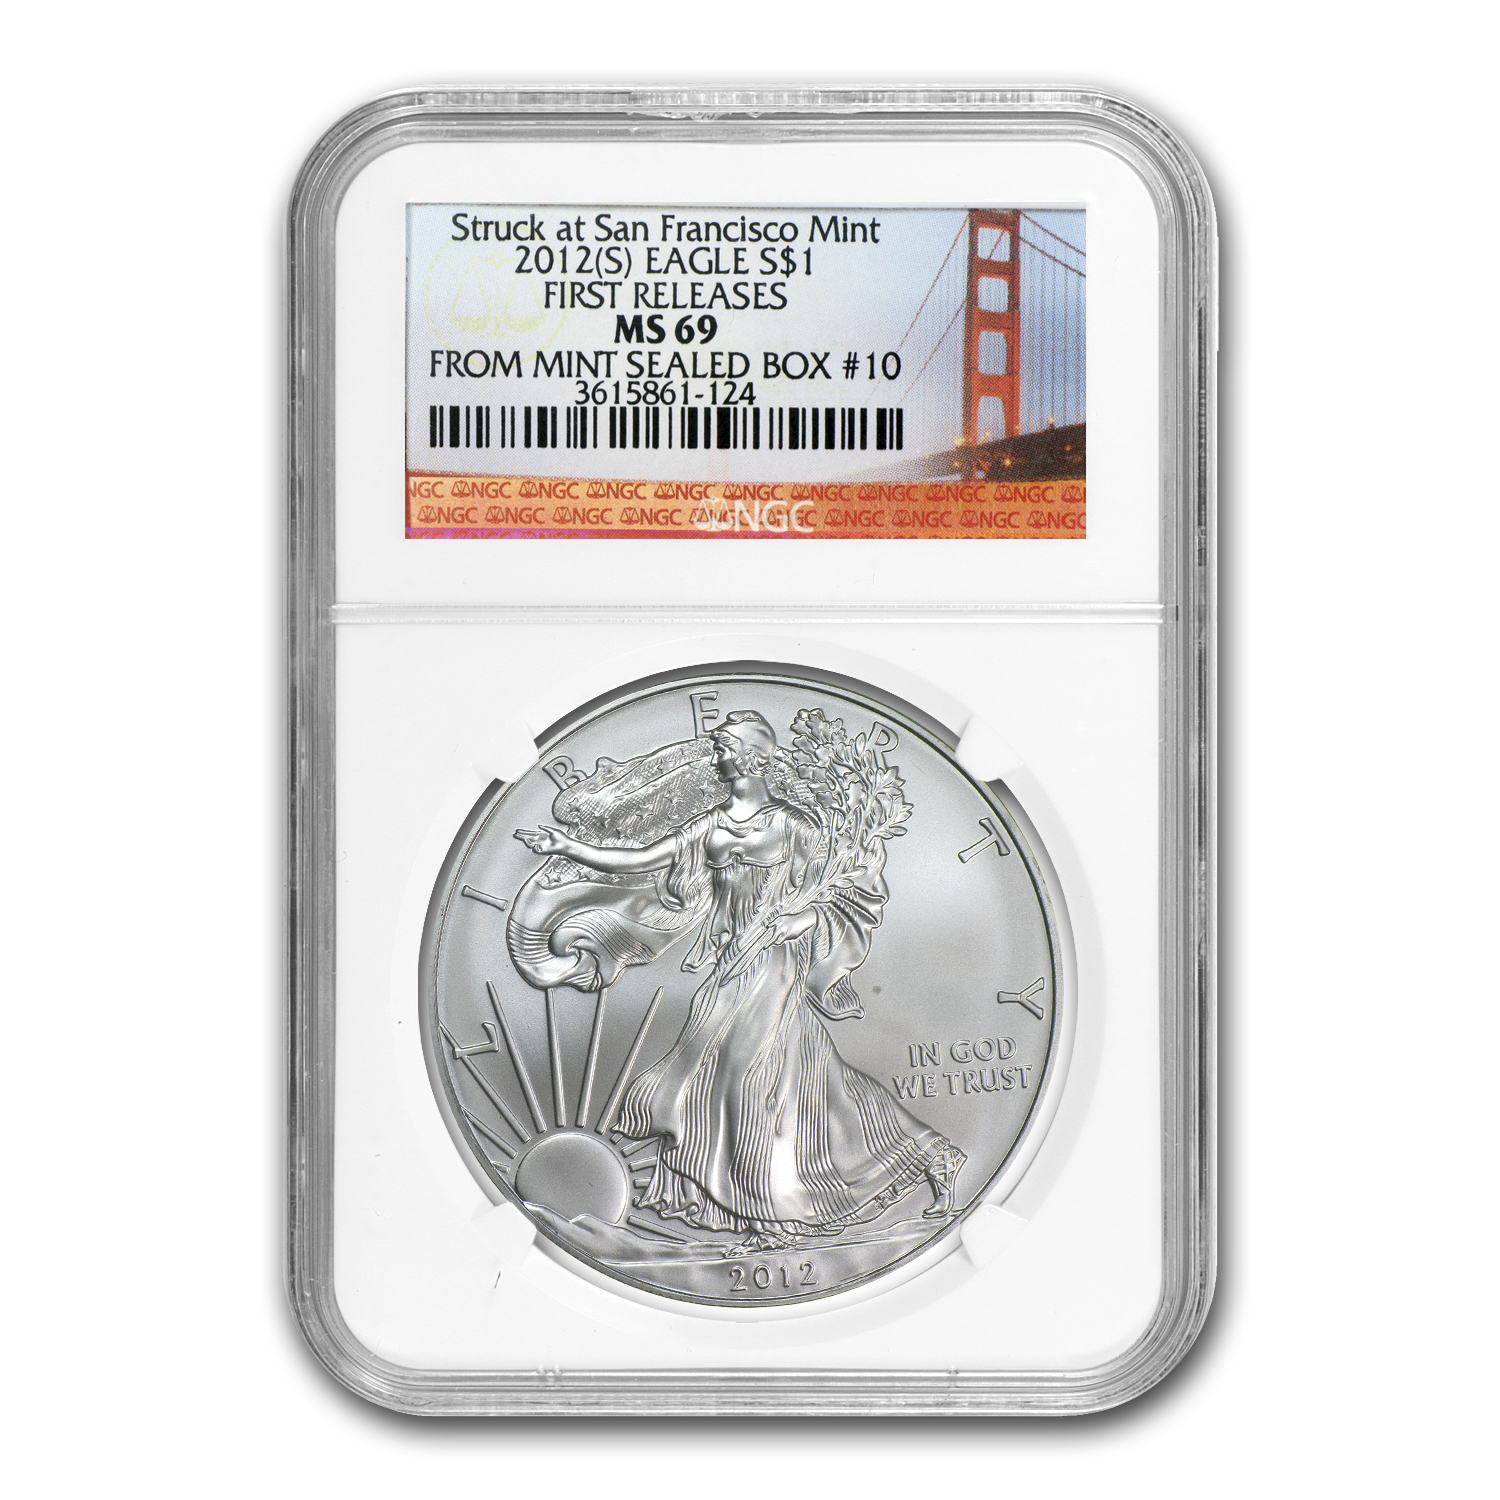 2012 (S) Silver Eagle MS-69 NGC (FR, Bridge Label, Box #10)